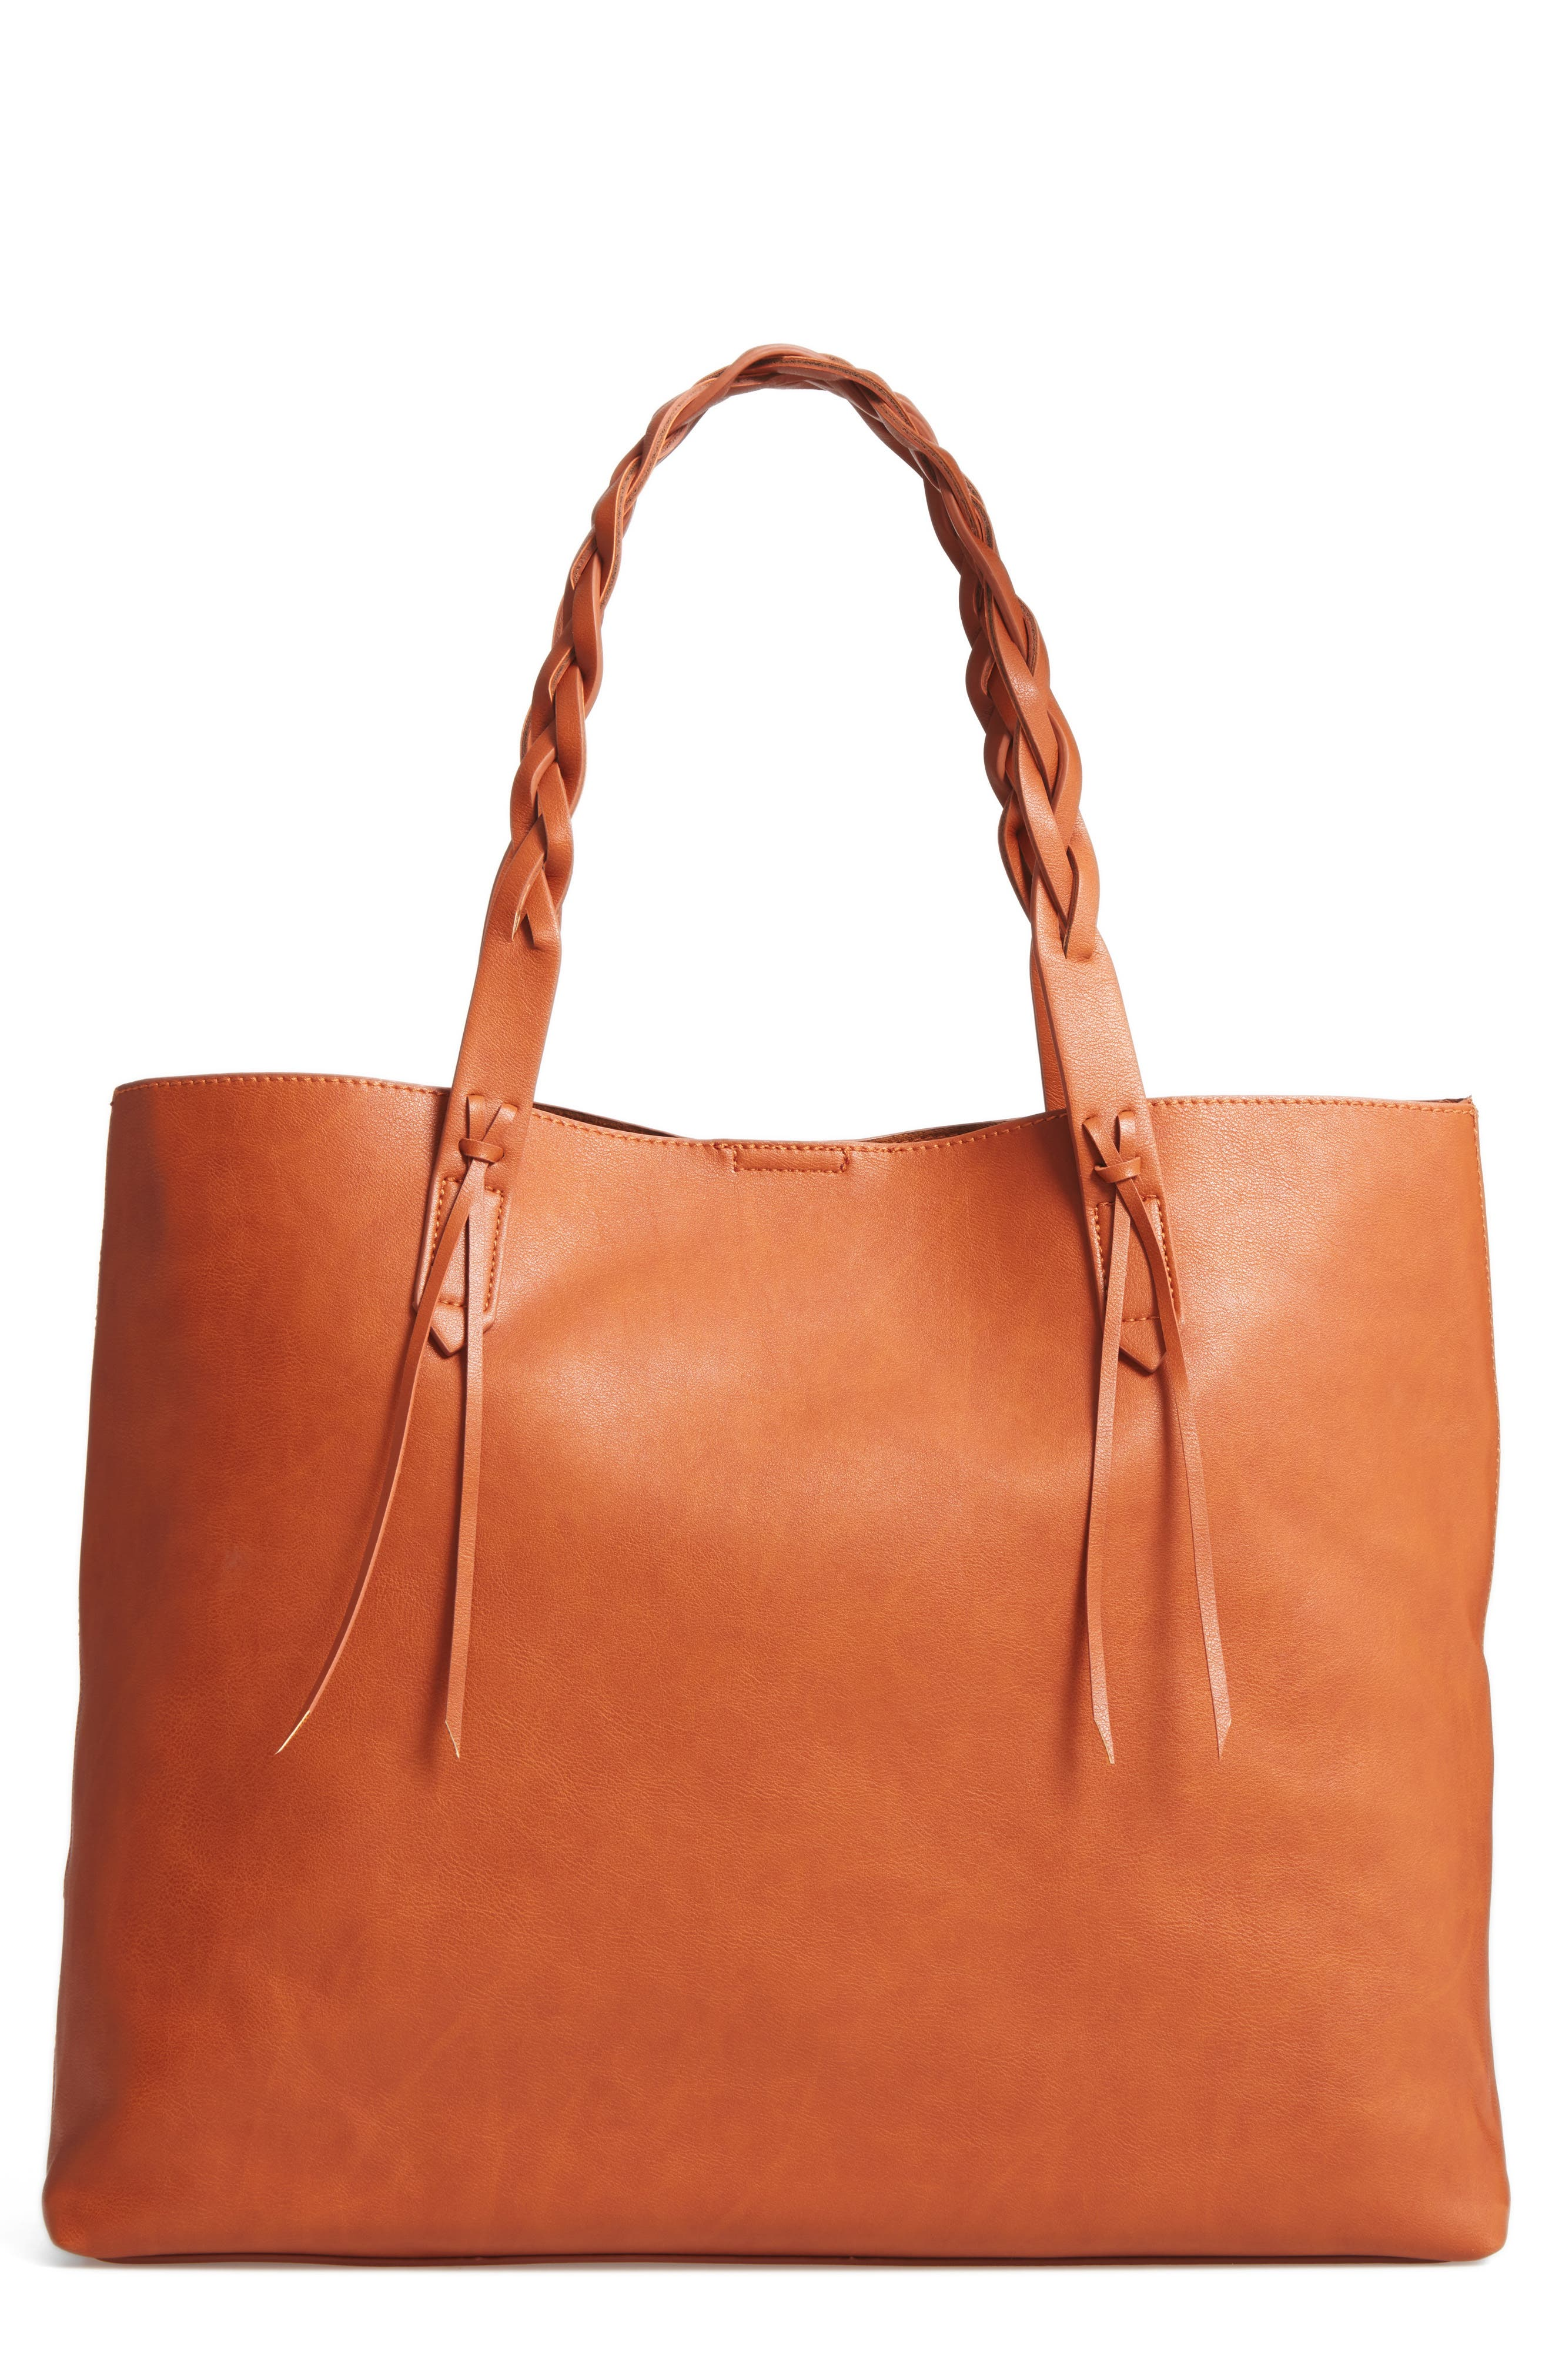 Amal Faux Leather Tote,                             Main thumbnail 1, color,                             Cognac